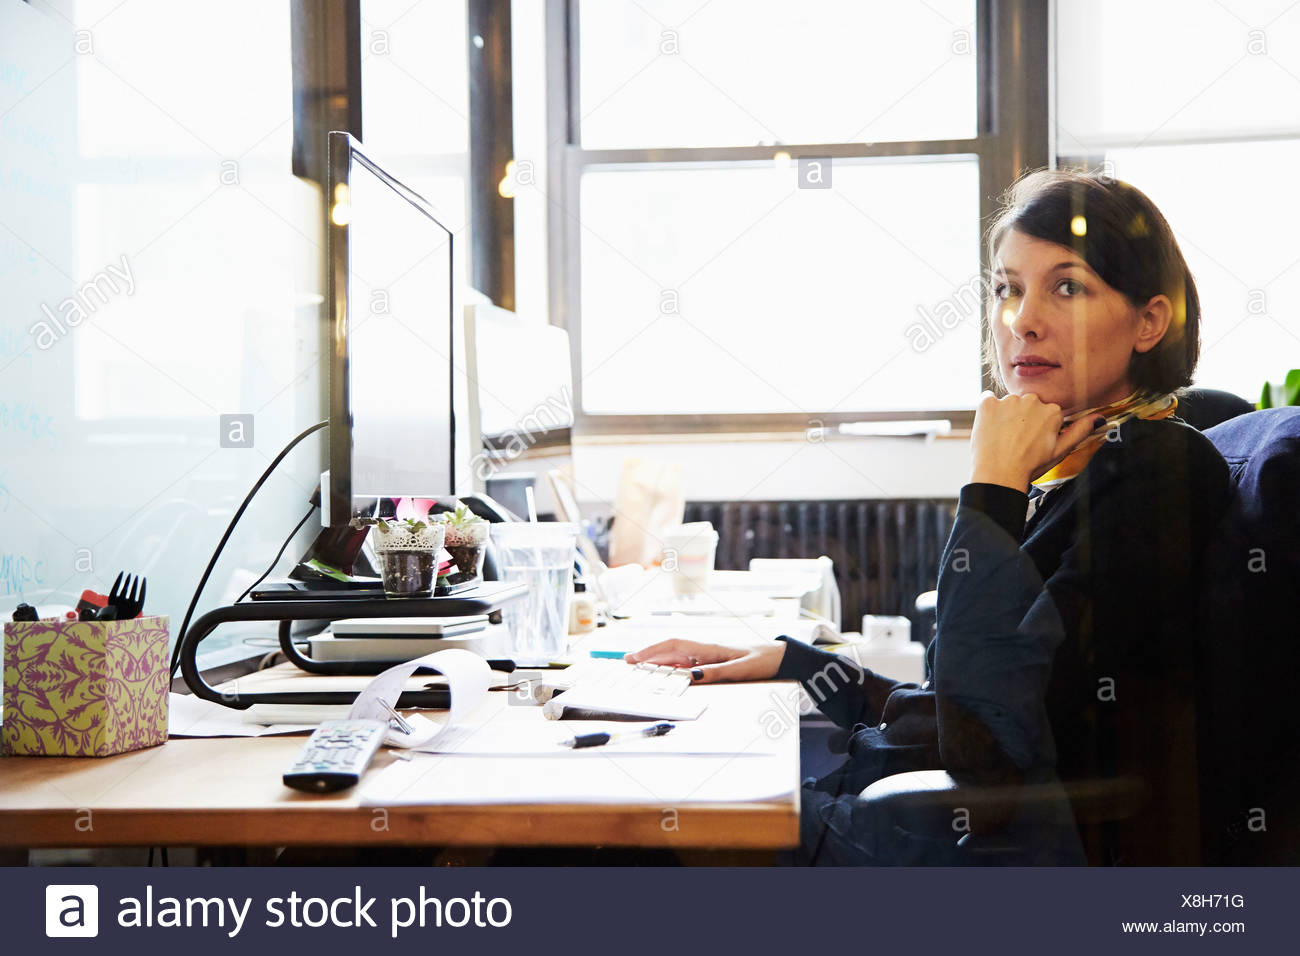 Businesswoman at desk with hand on chin - Stock Image